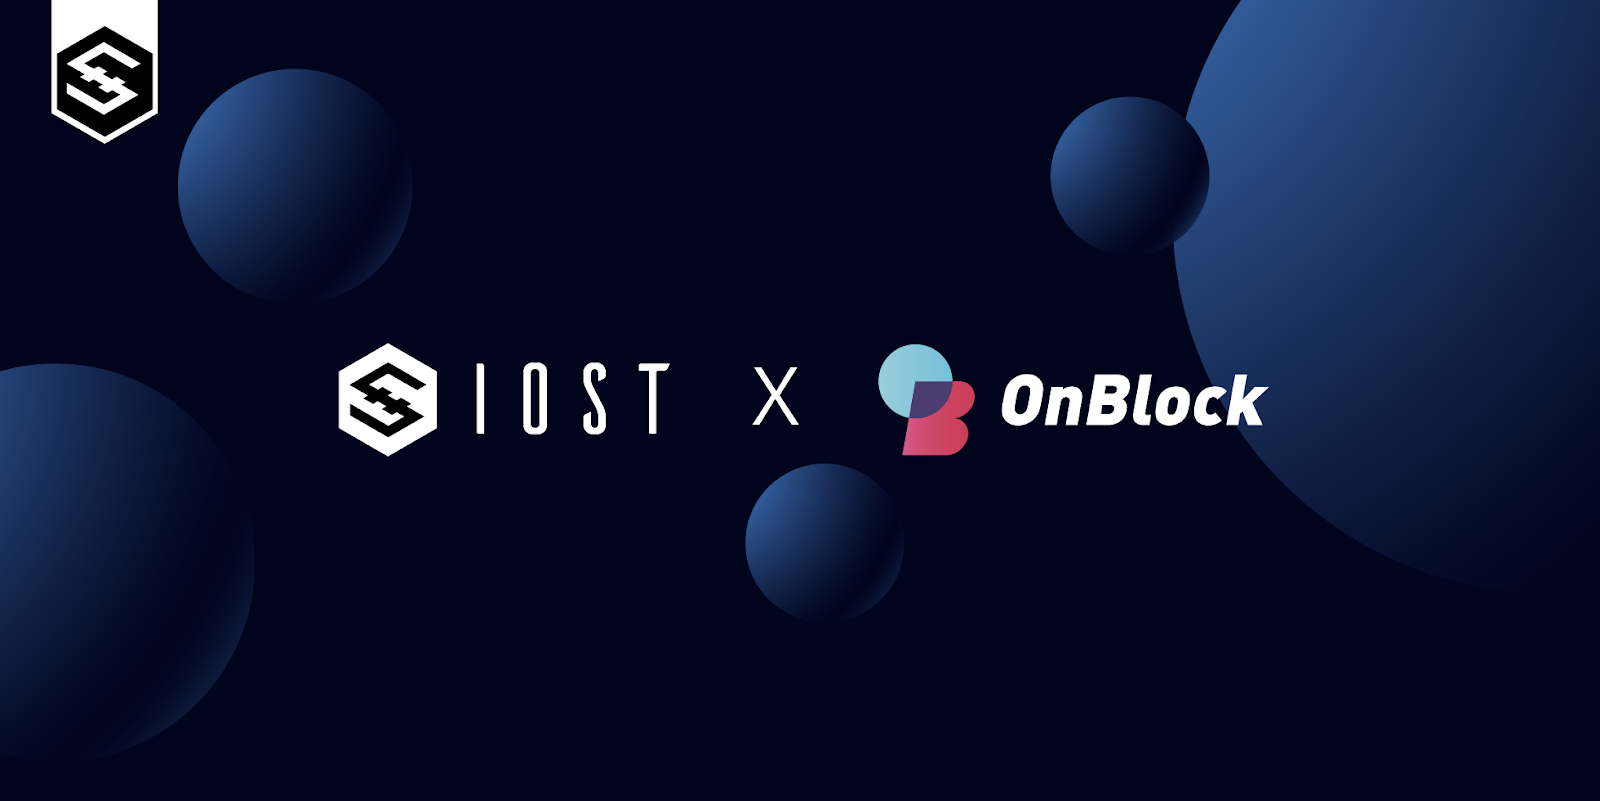 IOST introduces OnBlock to let everyday users interact with on-network DApps with email, mobile number